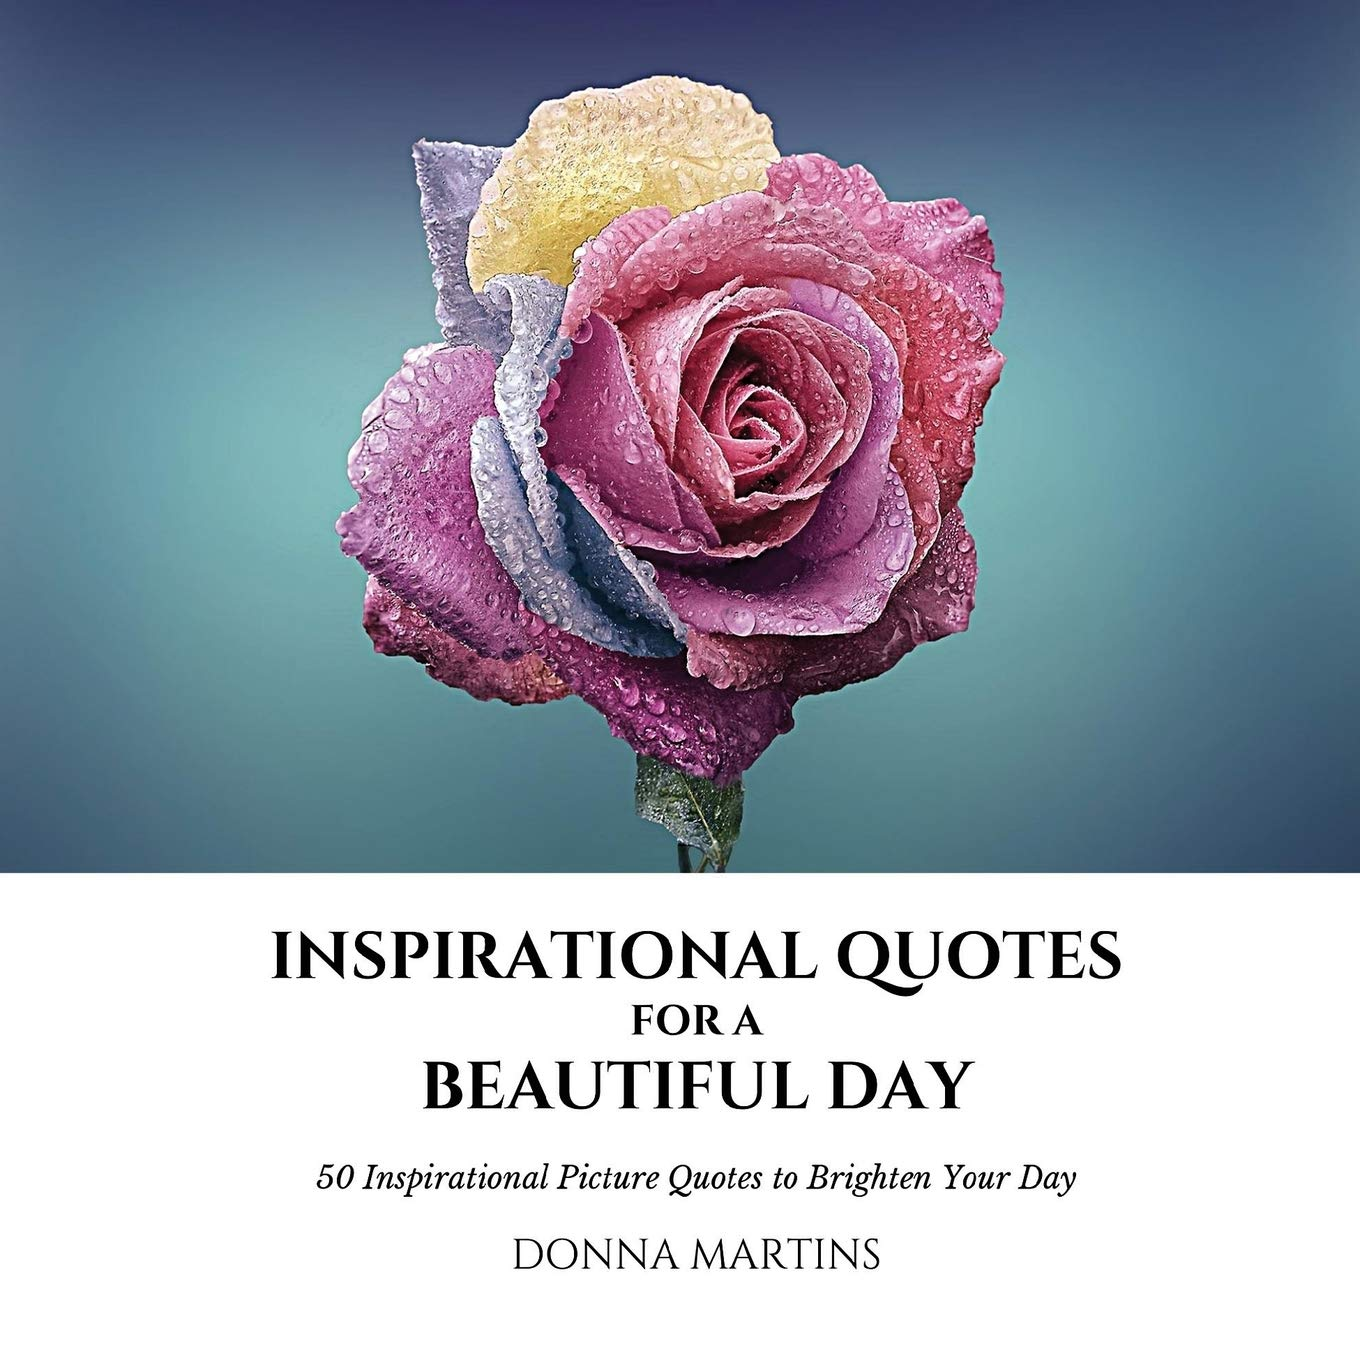 Inspirational Quotes For A Beautiful Day 50 Inspirational Picture Quotes To Brighten Your Day 1 Daily Motivation Martins Donna 9781732735705 Amazon Com Books